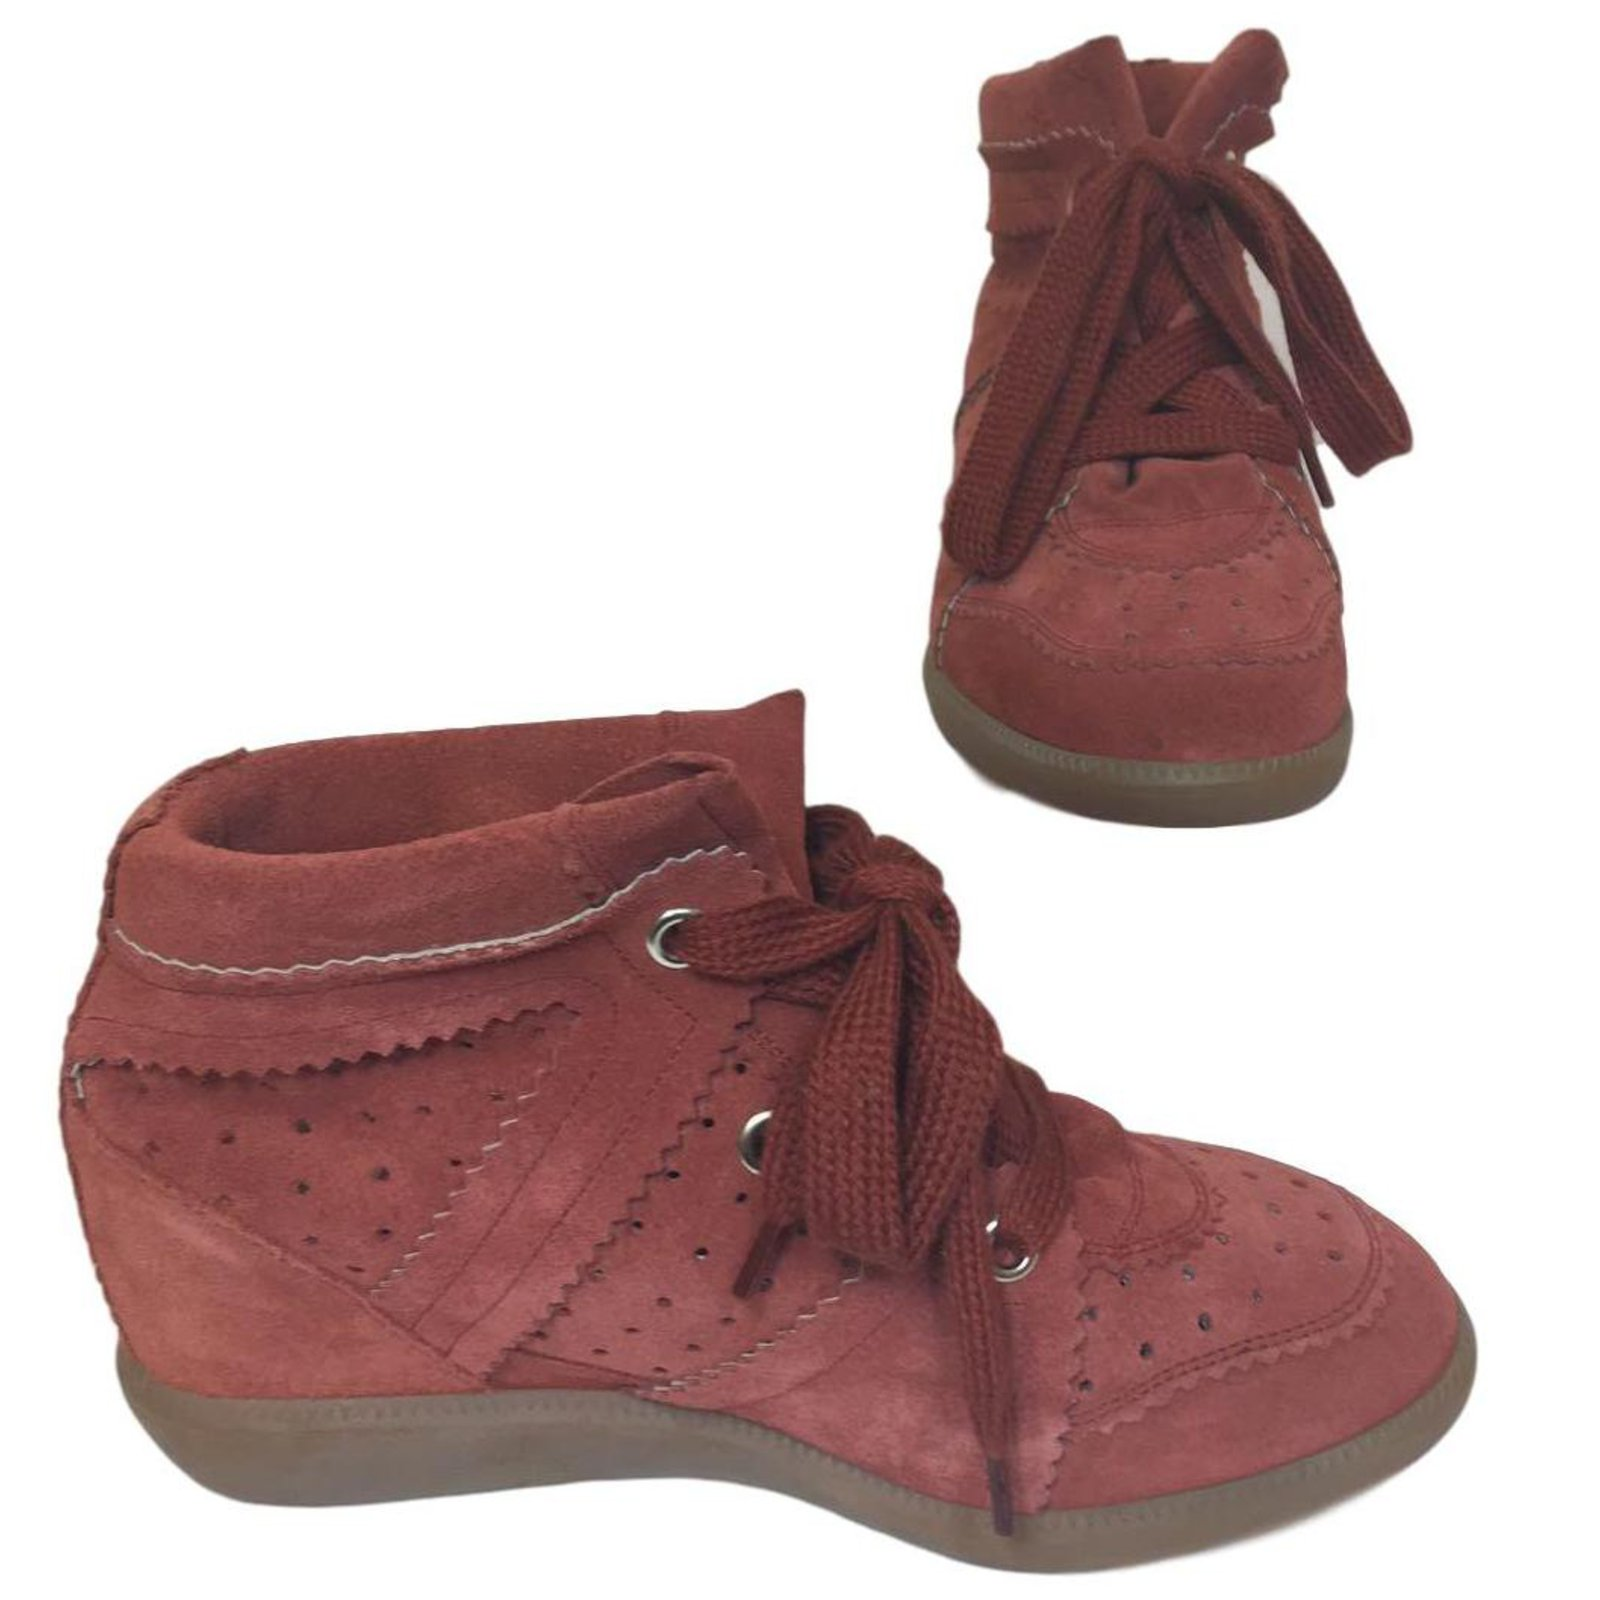 080c29b7d9 Isabel Marant Bobby Sneakers Leather,Velvet Other ref.70374 - Joli ...